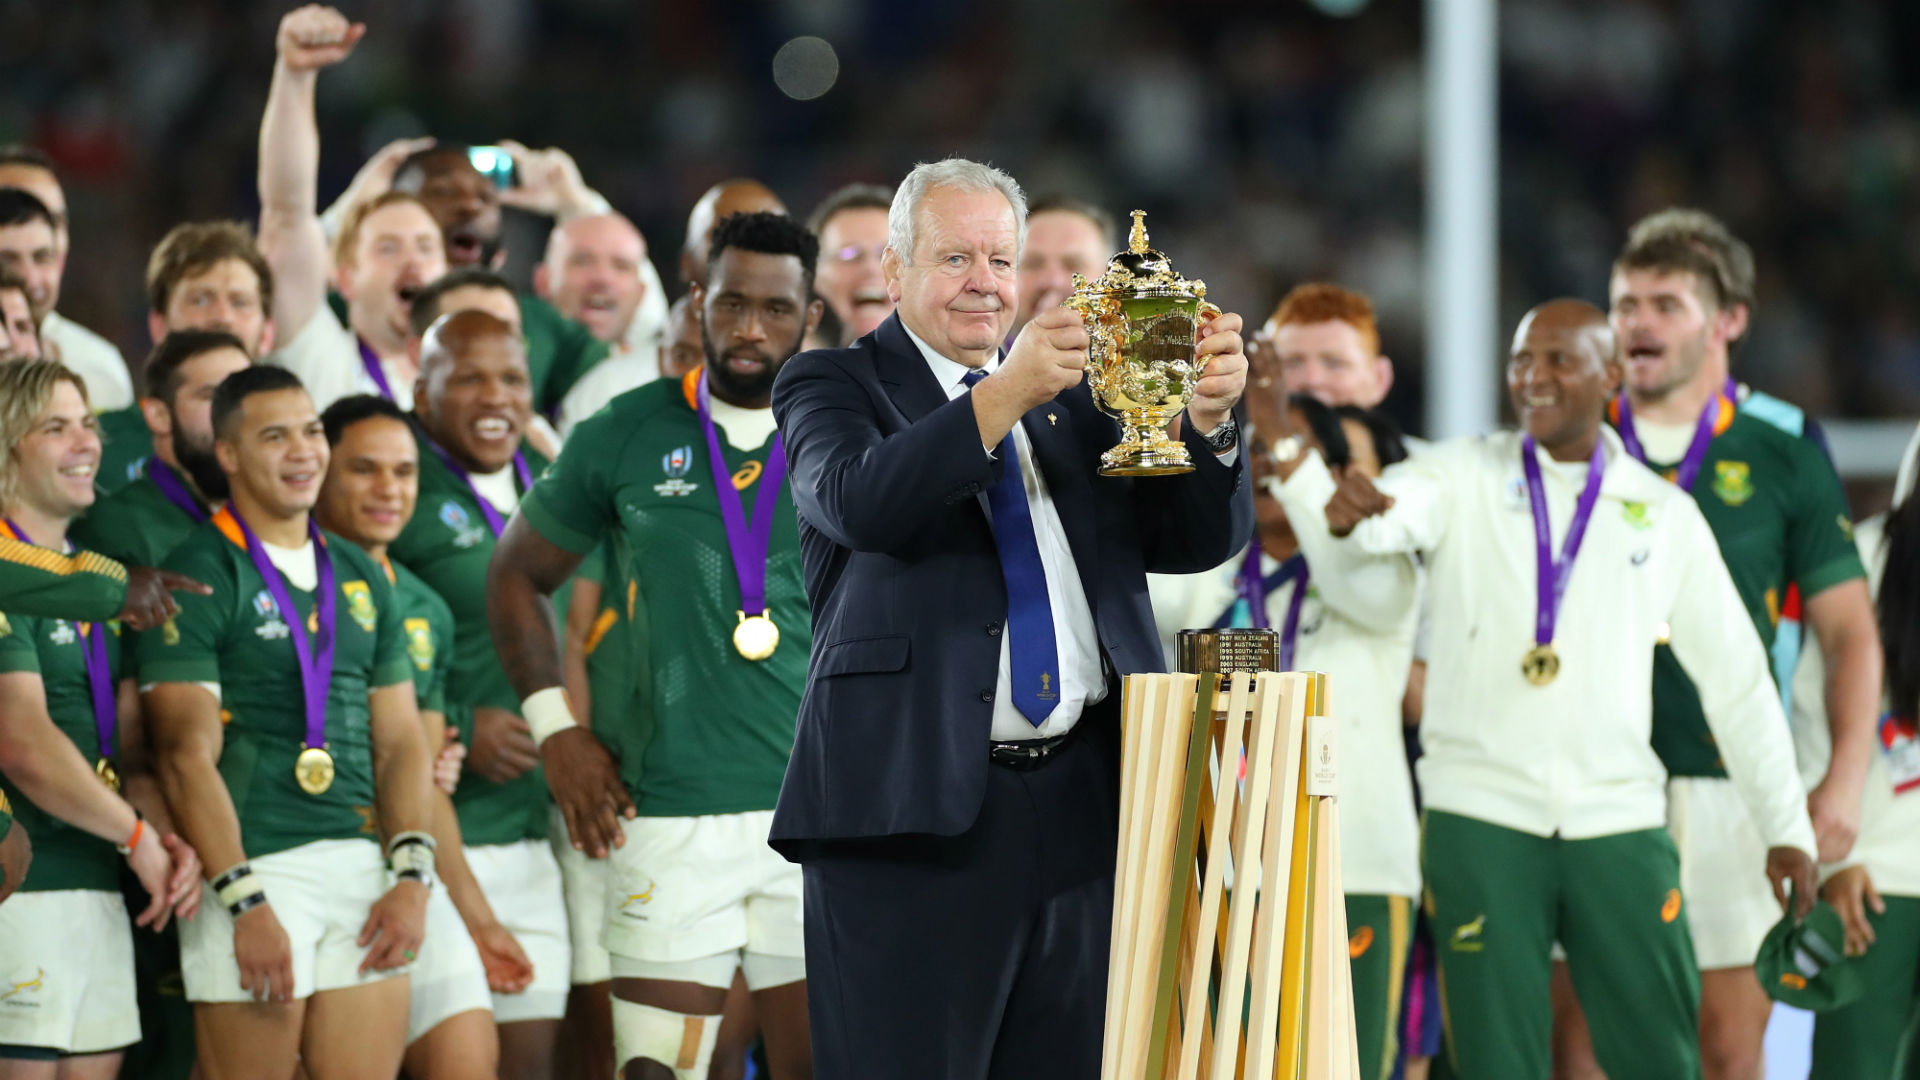 Rugby World Cup 2019: Beaumont praises Japan after 'one of the greatest, if not the greatest' tournament